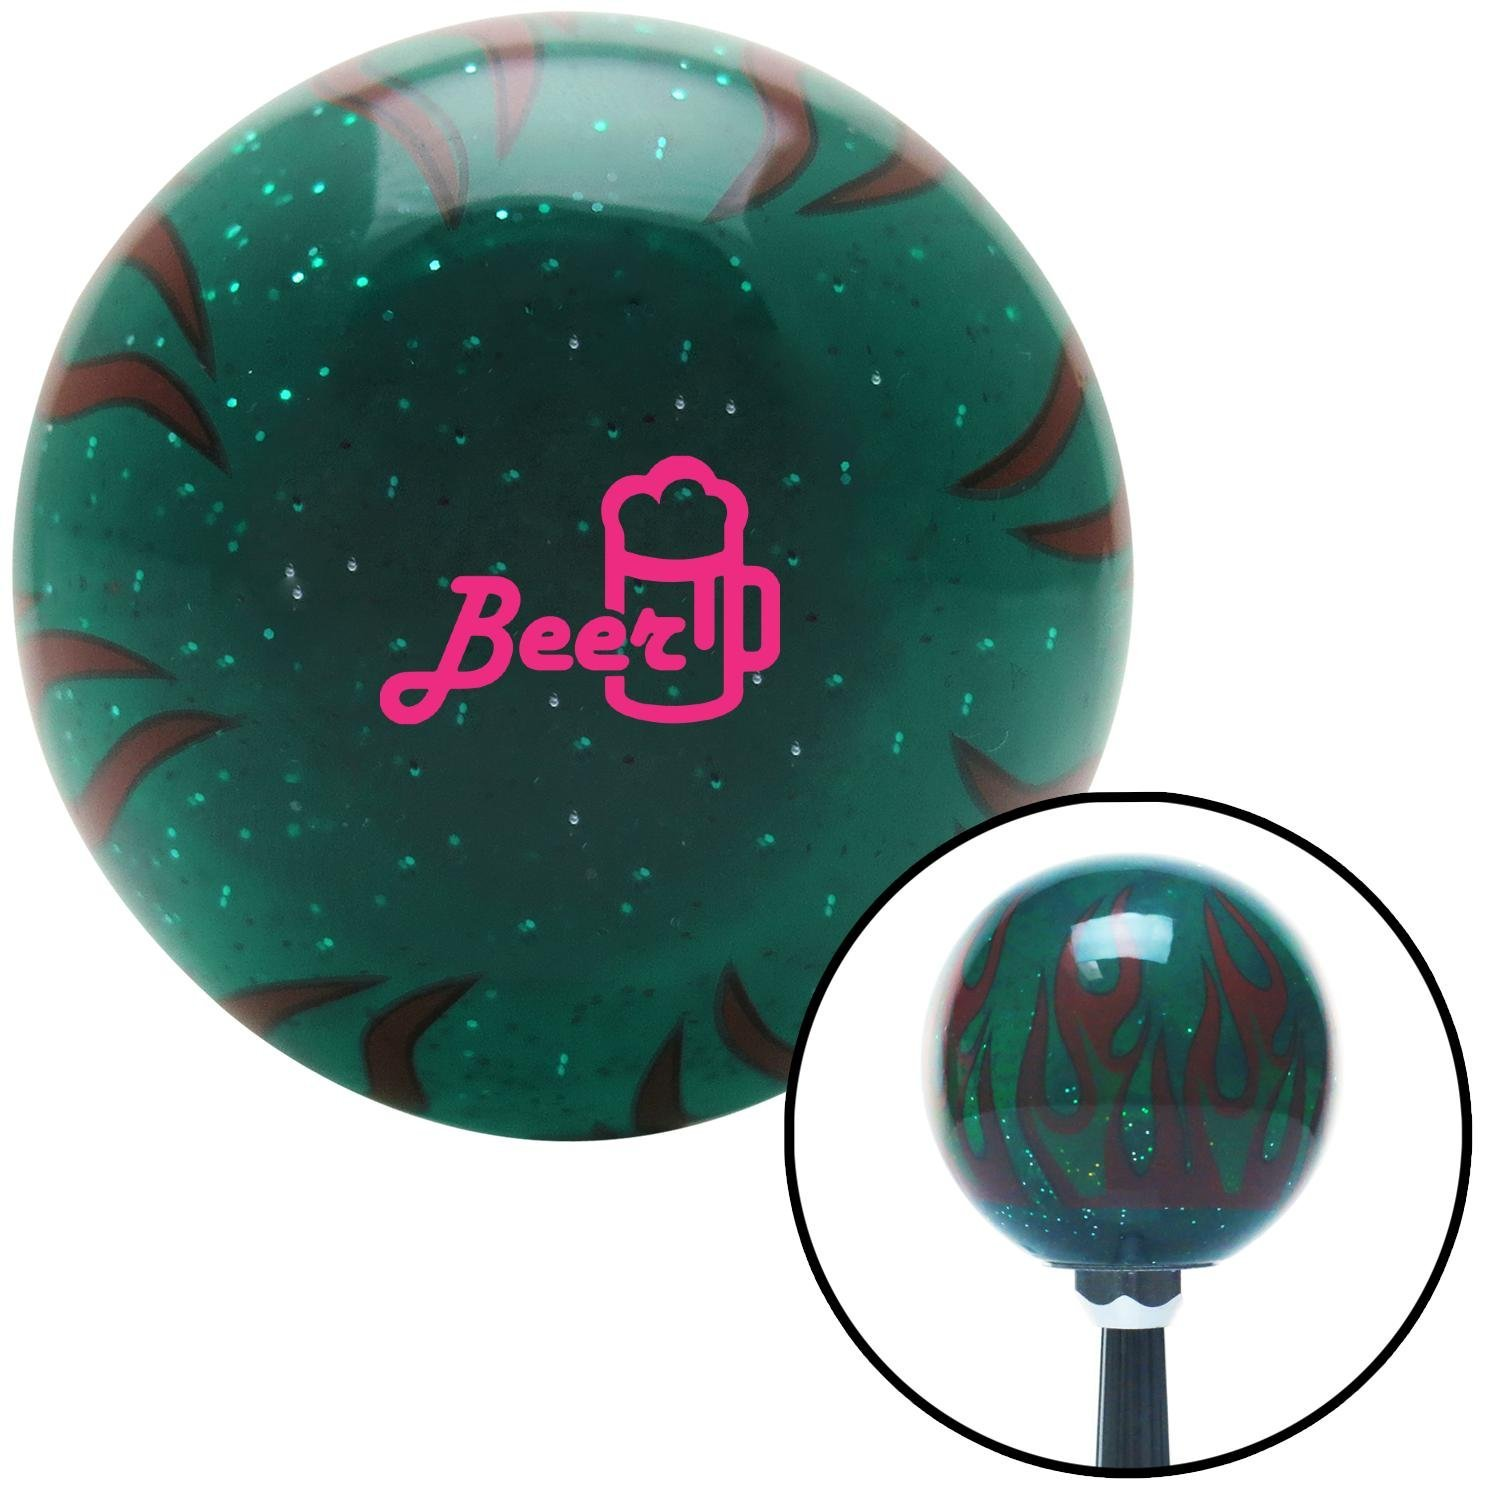 American Shifter 300486 Shift Knob Pink Beer and Mug Green Flame Metal Flake with M16 x 1.5 Insert